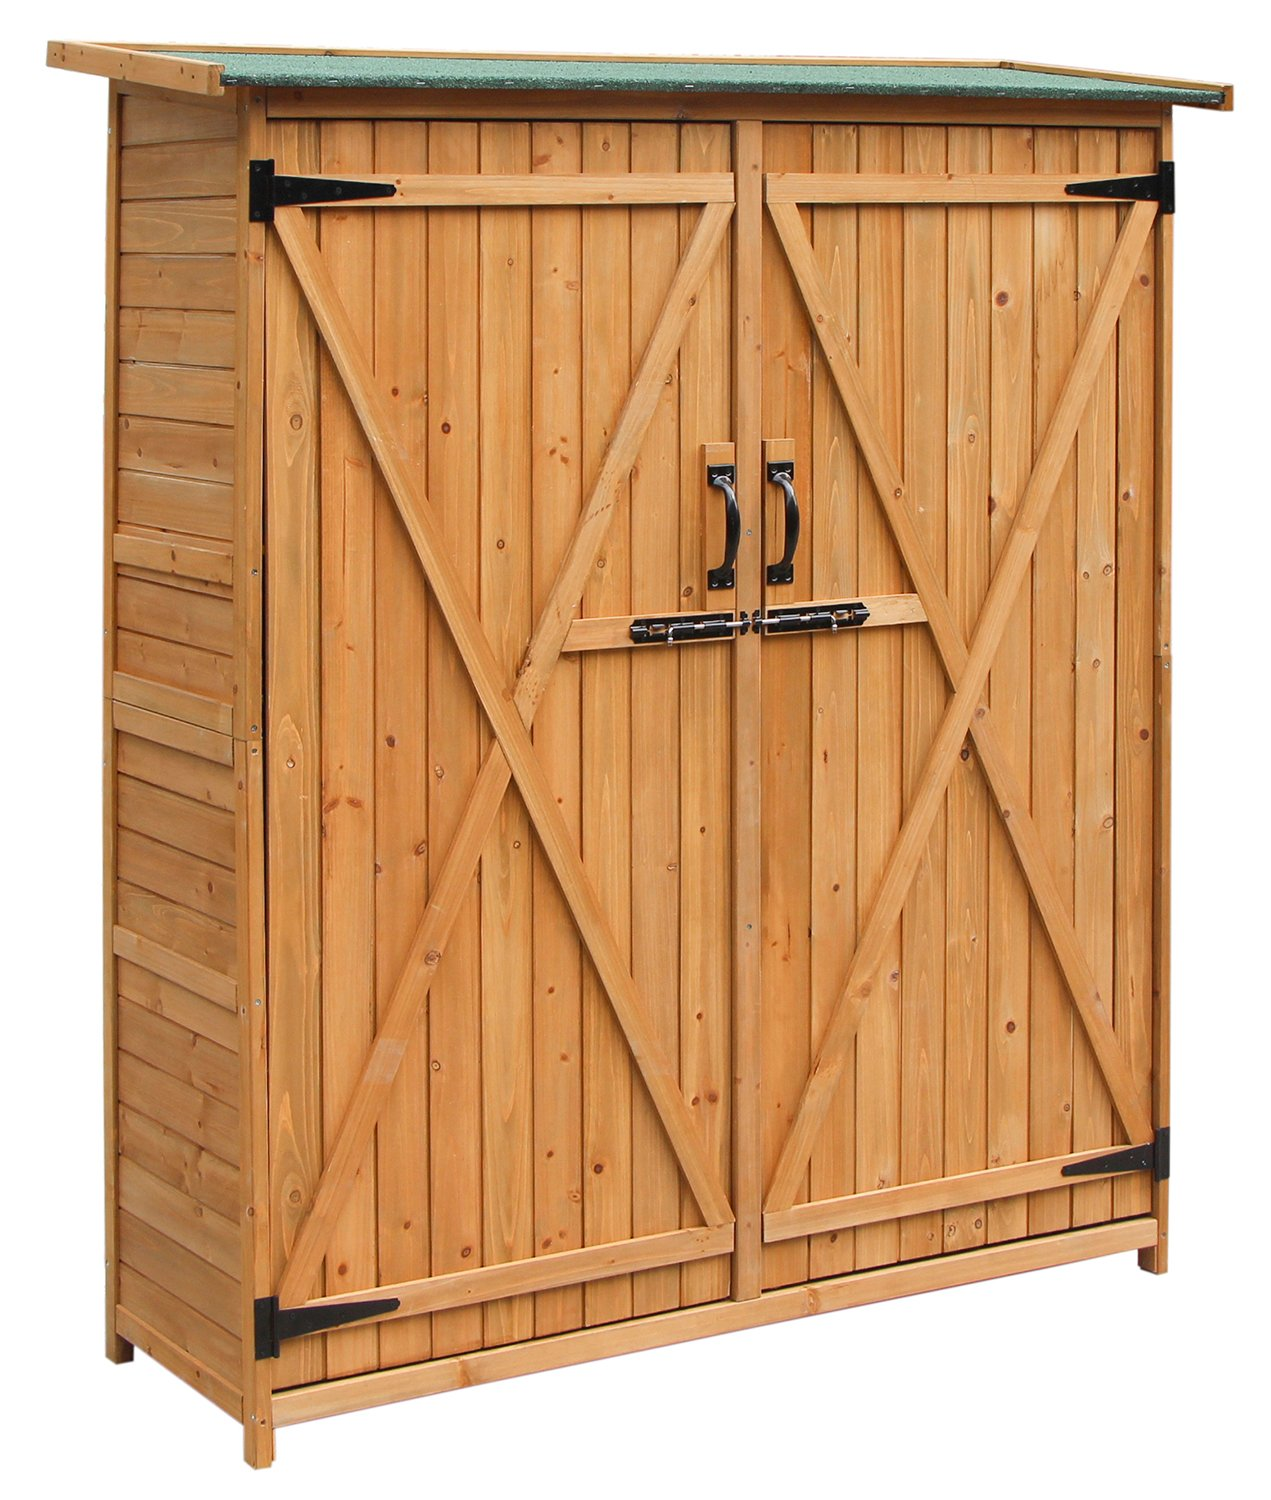 amazoncom merax wooden outdoor garden shed with fir wood medium storage shed lockable storage unit with double doors natural color garden outdoor - Garden Sheds Wooden